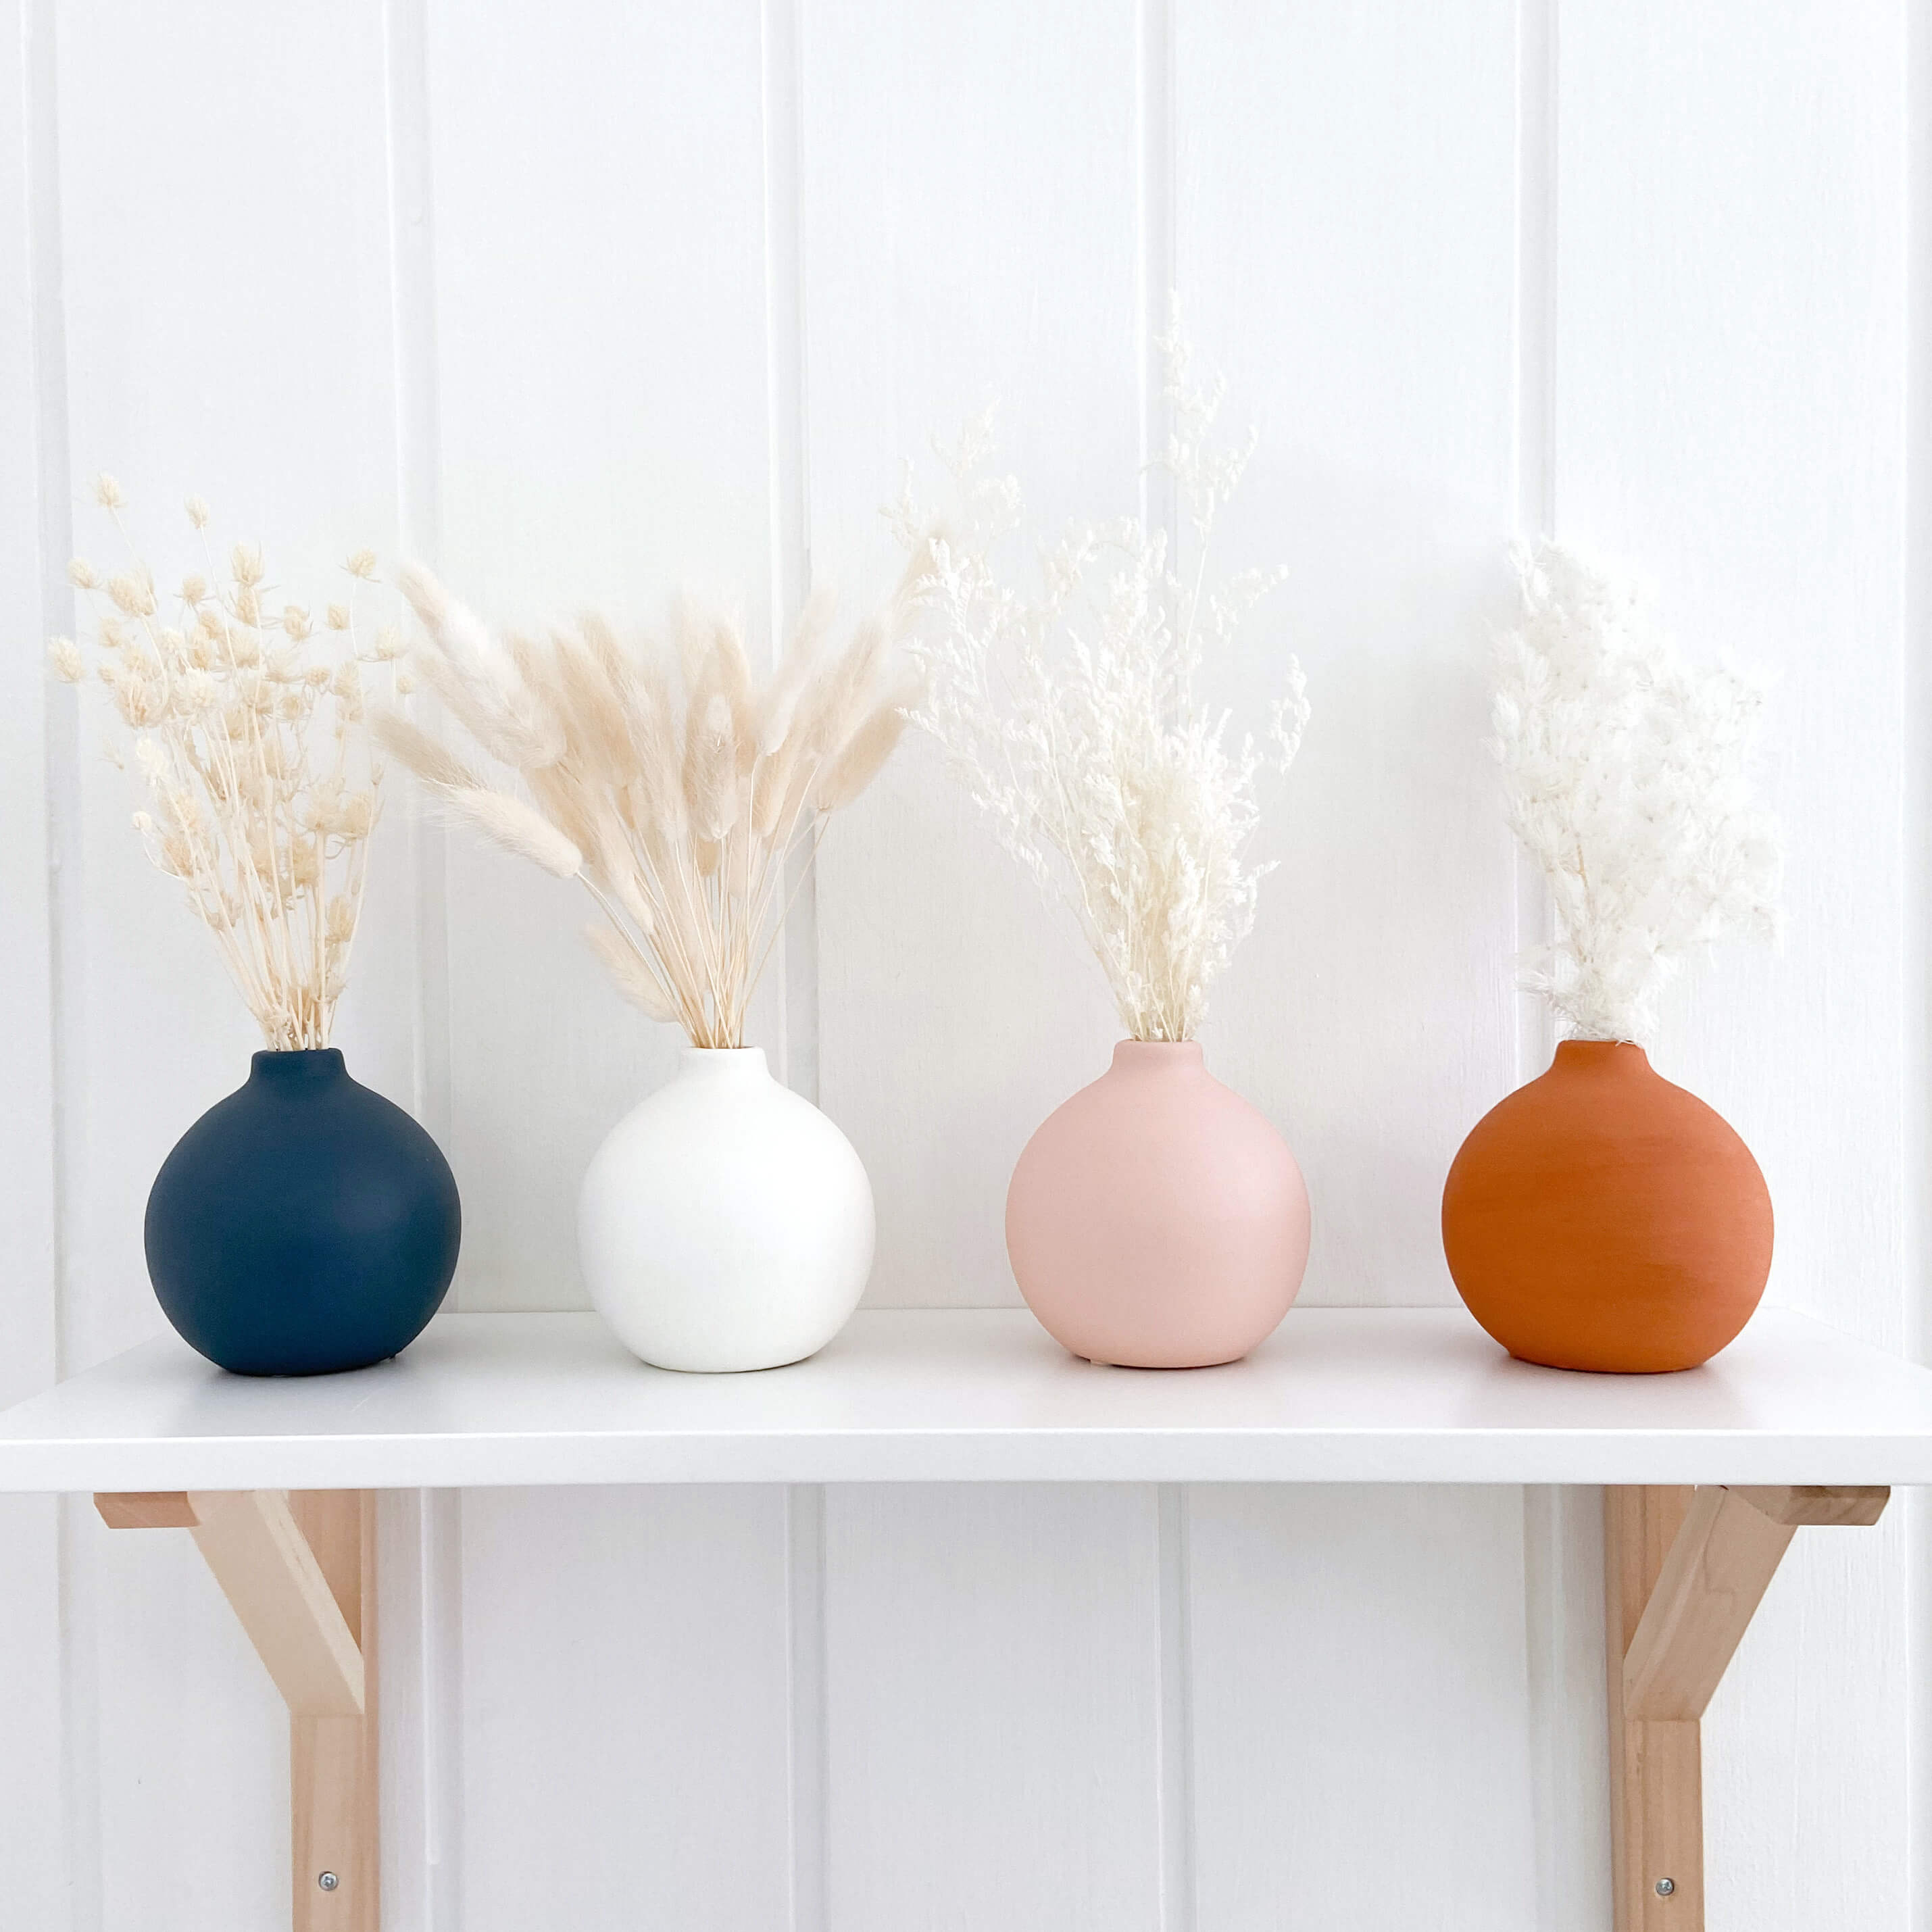 4 round vases in navy, pink, white and terracotta. Sitting on a white nursery shelf with dried bunny tails and preserved flowers in them